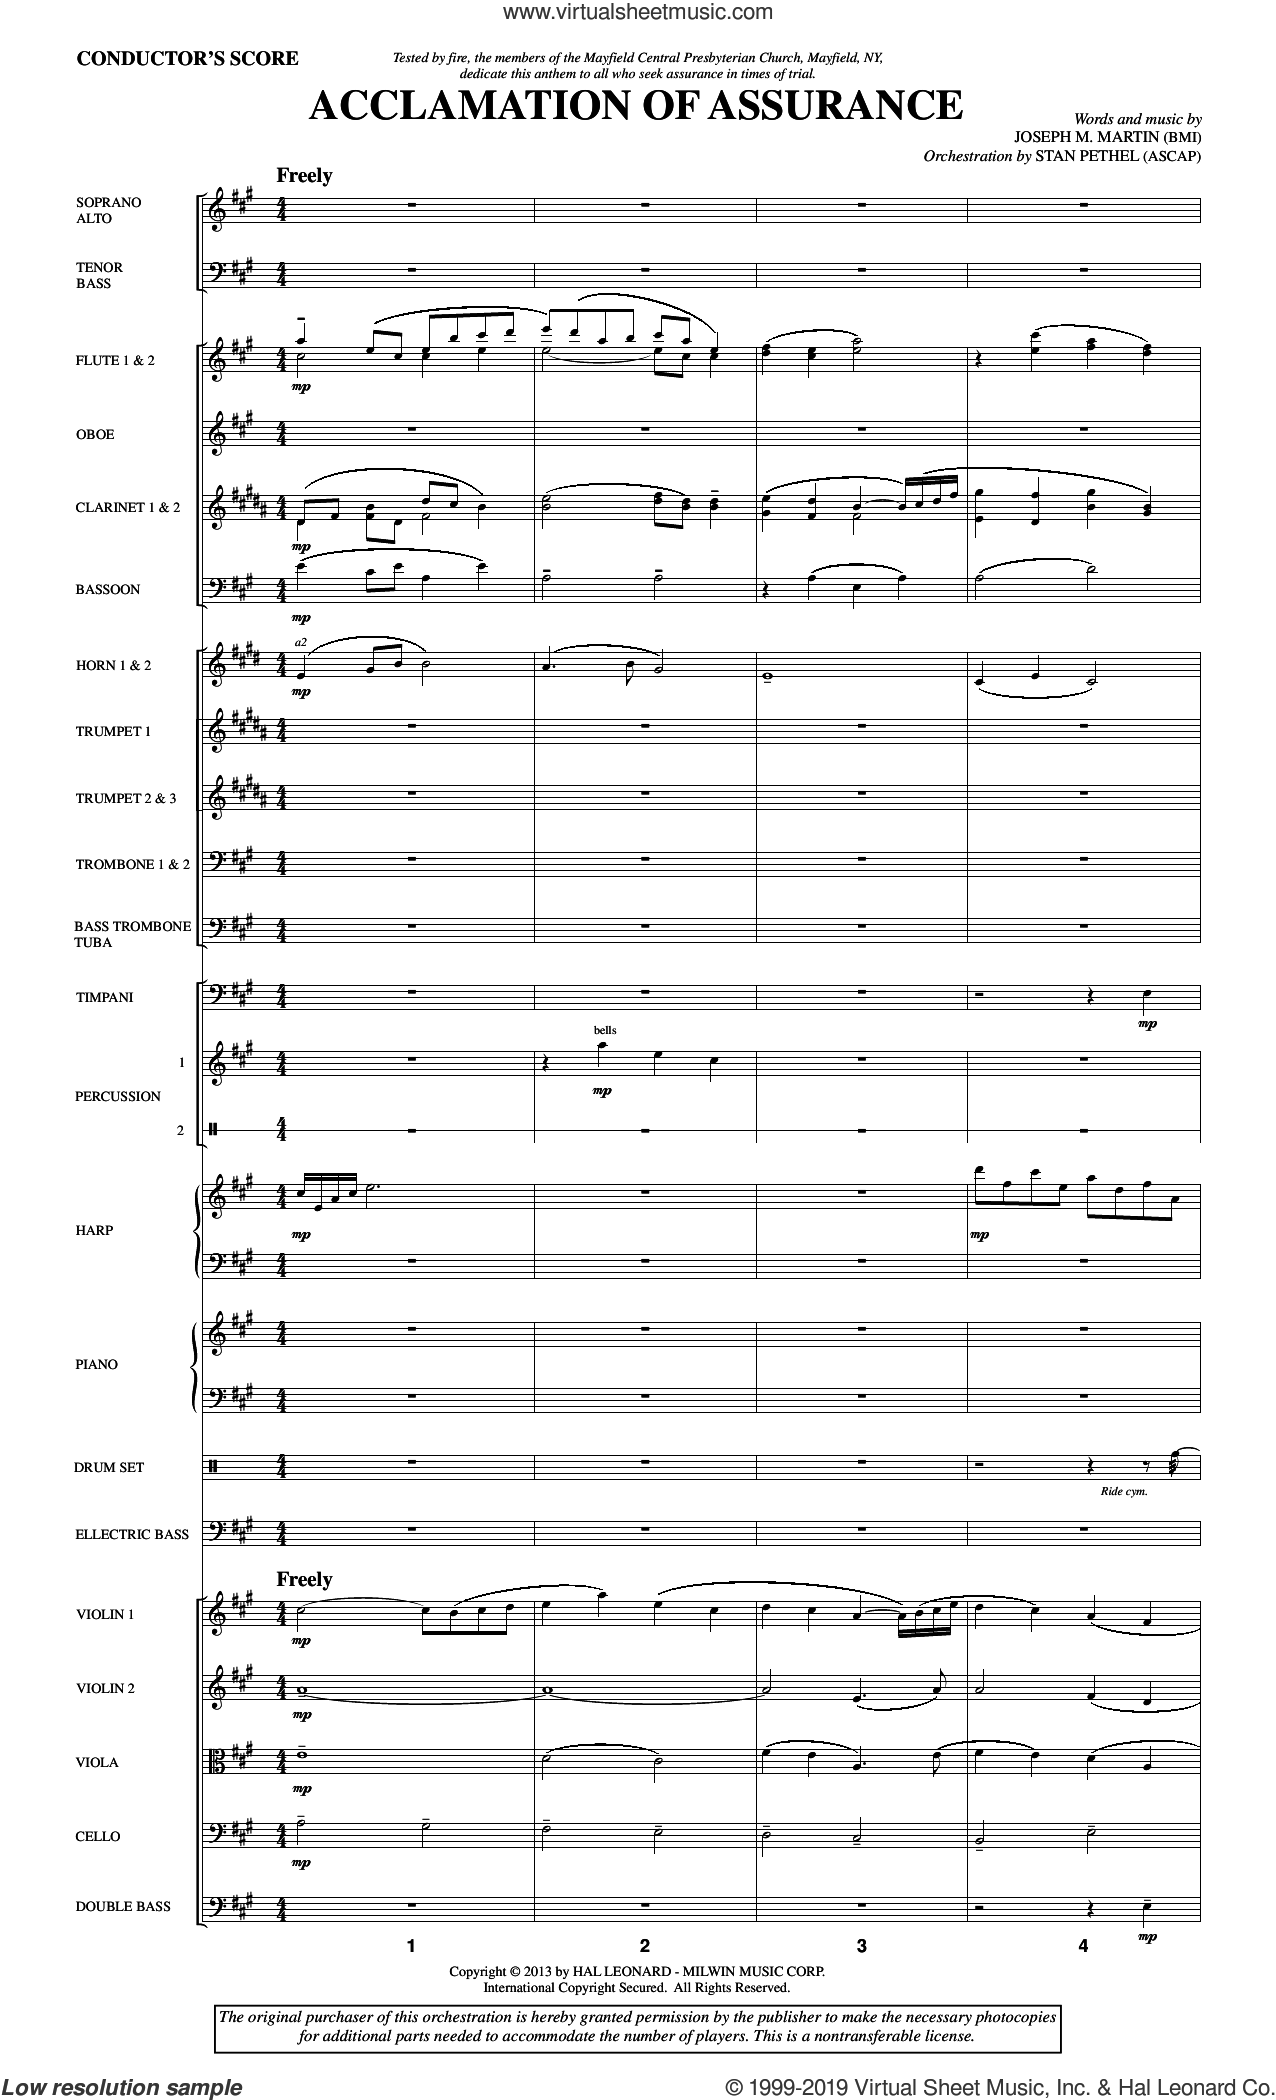 Acclamation of Assurance (COMPLETE) sheet music for orchestra/band by Joseph M. Martin, intermediate skill level